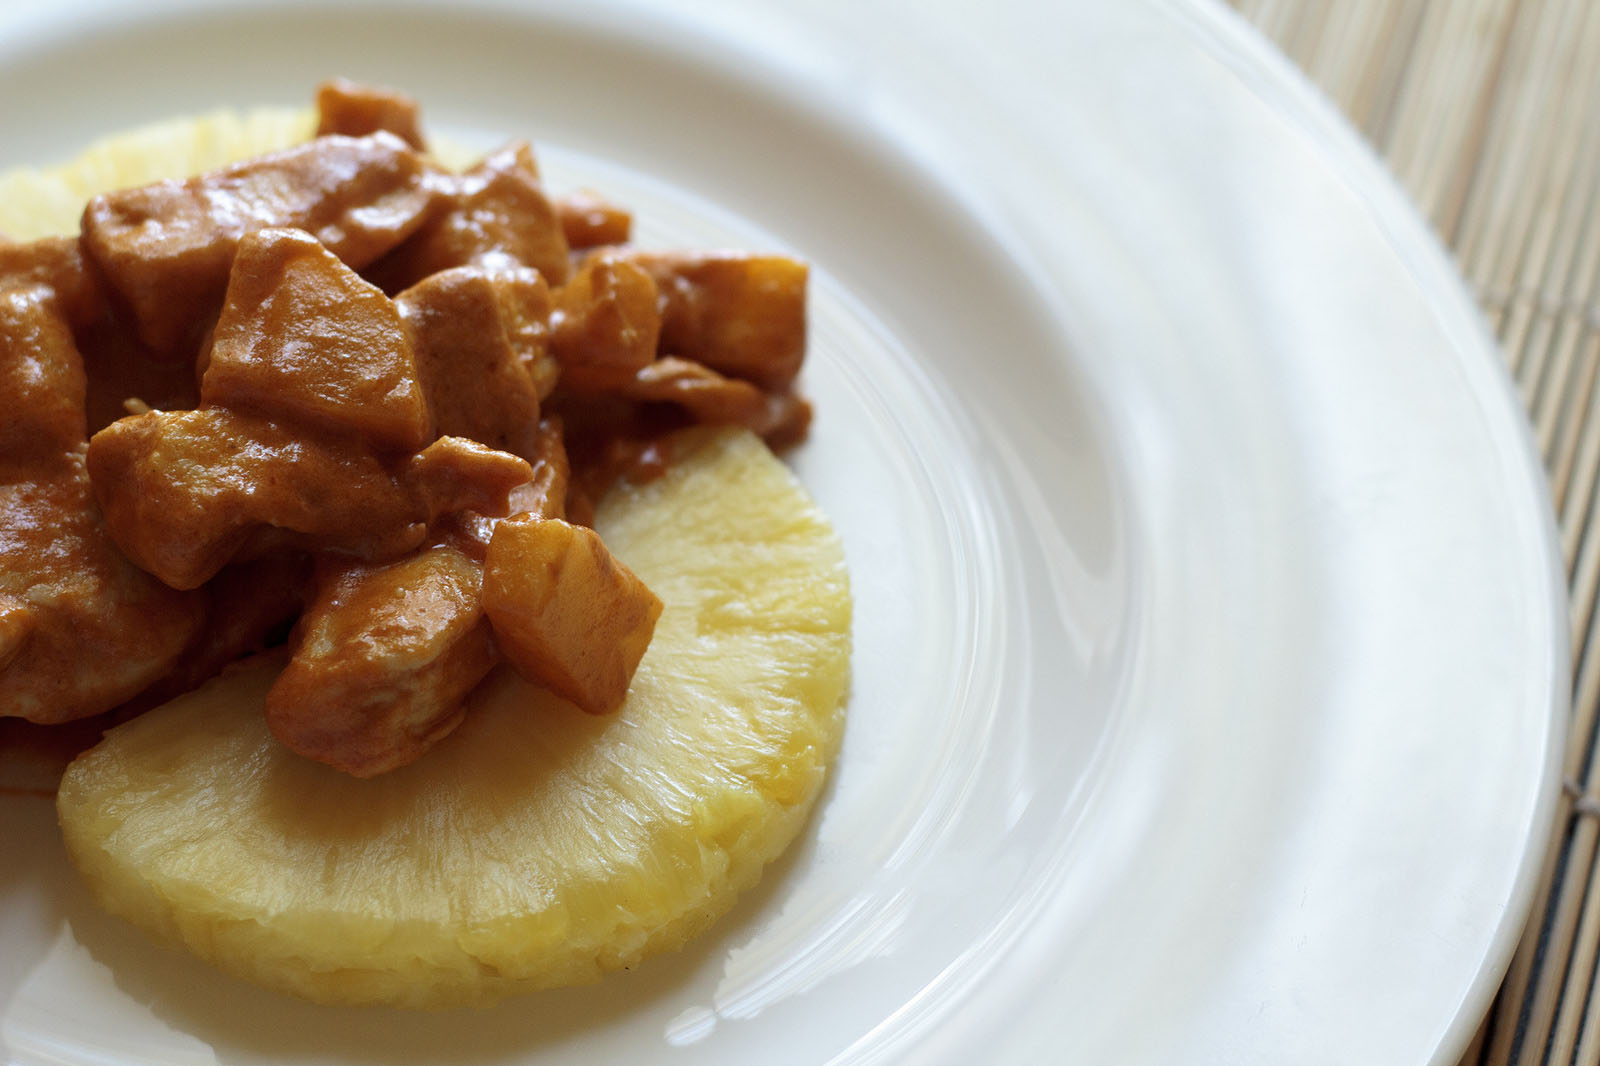 Kaeng Phet (Pollo al curry rosso con patate)